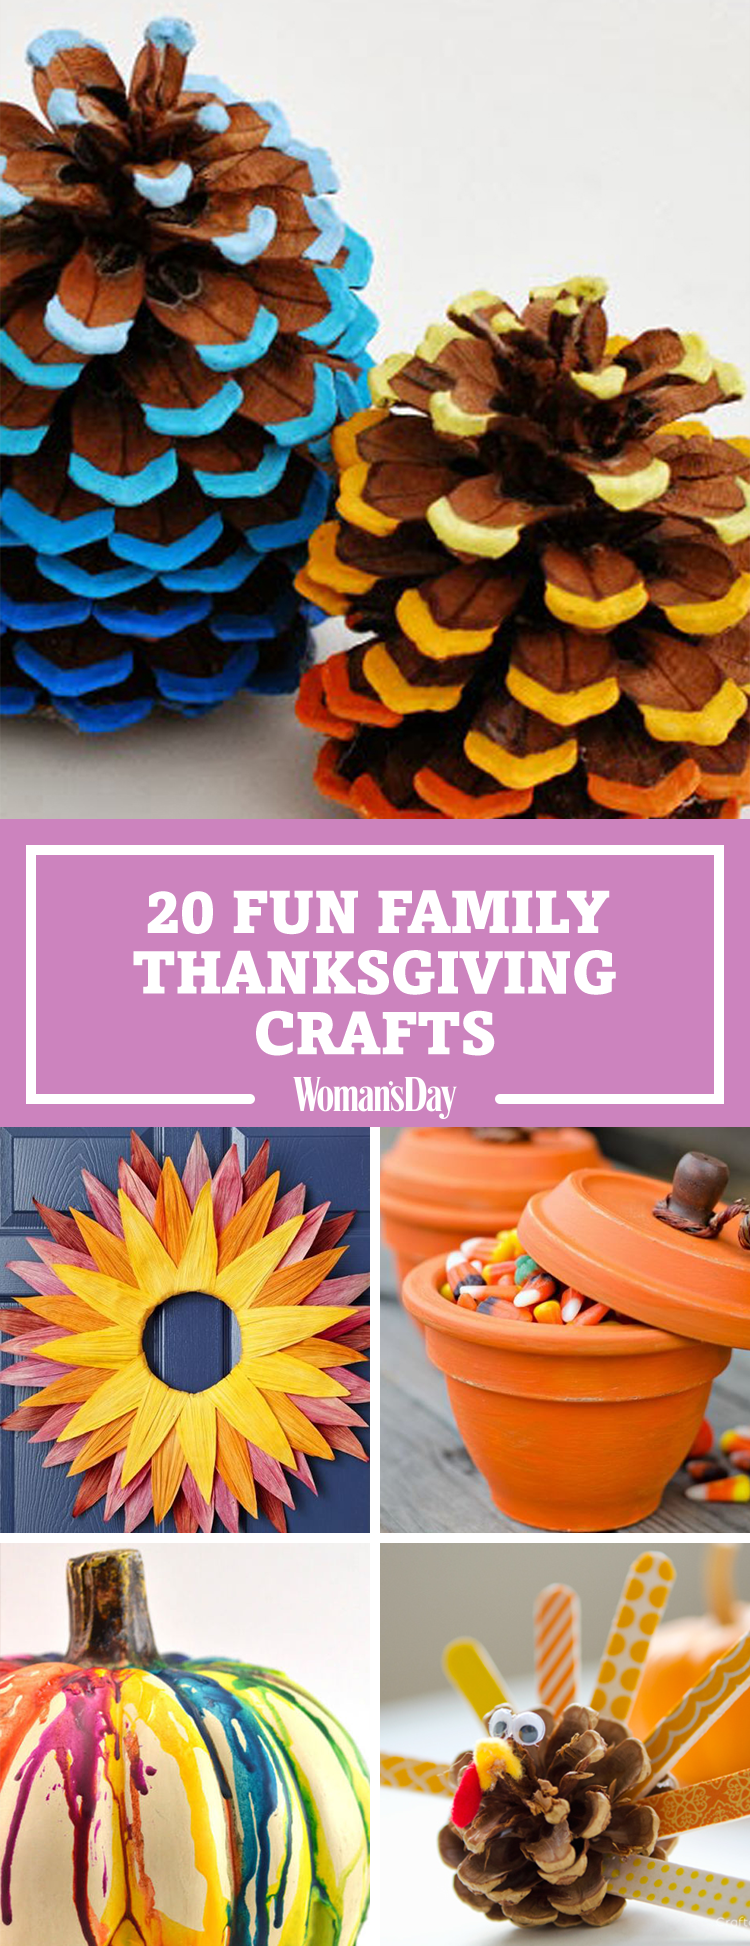 29 fun thanksgiving crafts for kids easy diy ideas to